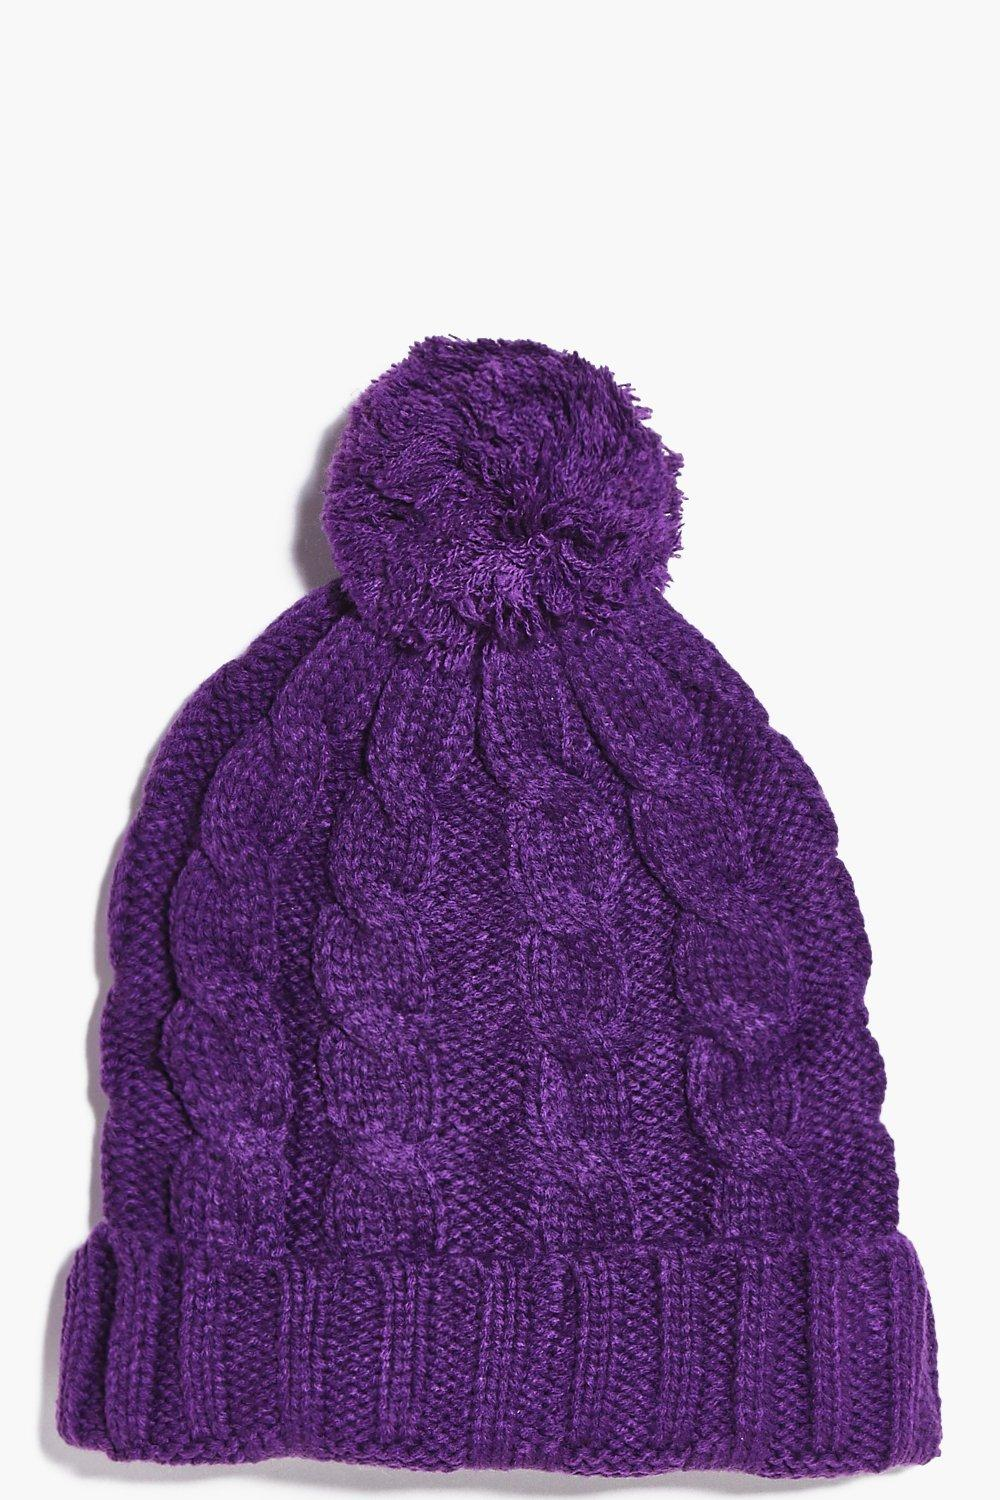 Pom Pom Hat - purple - Girls Pom Pom Hat - purple